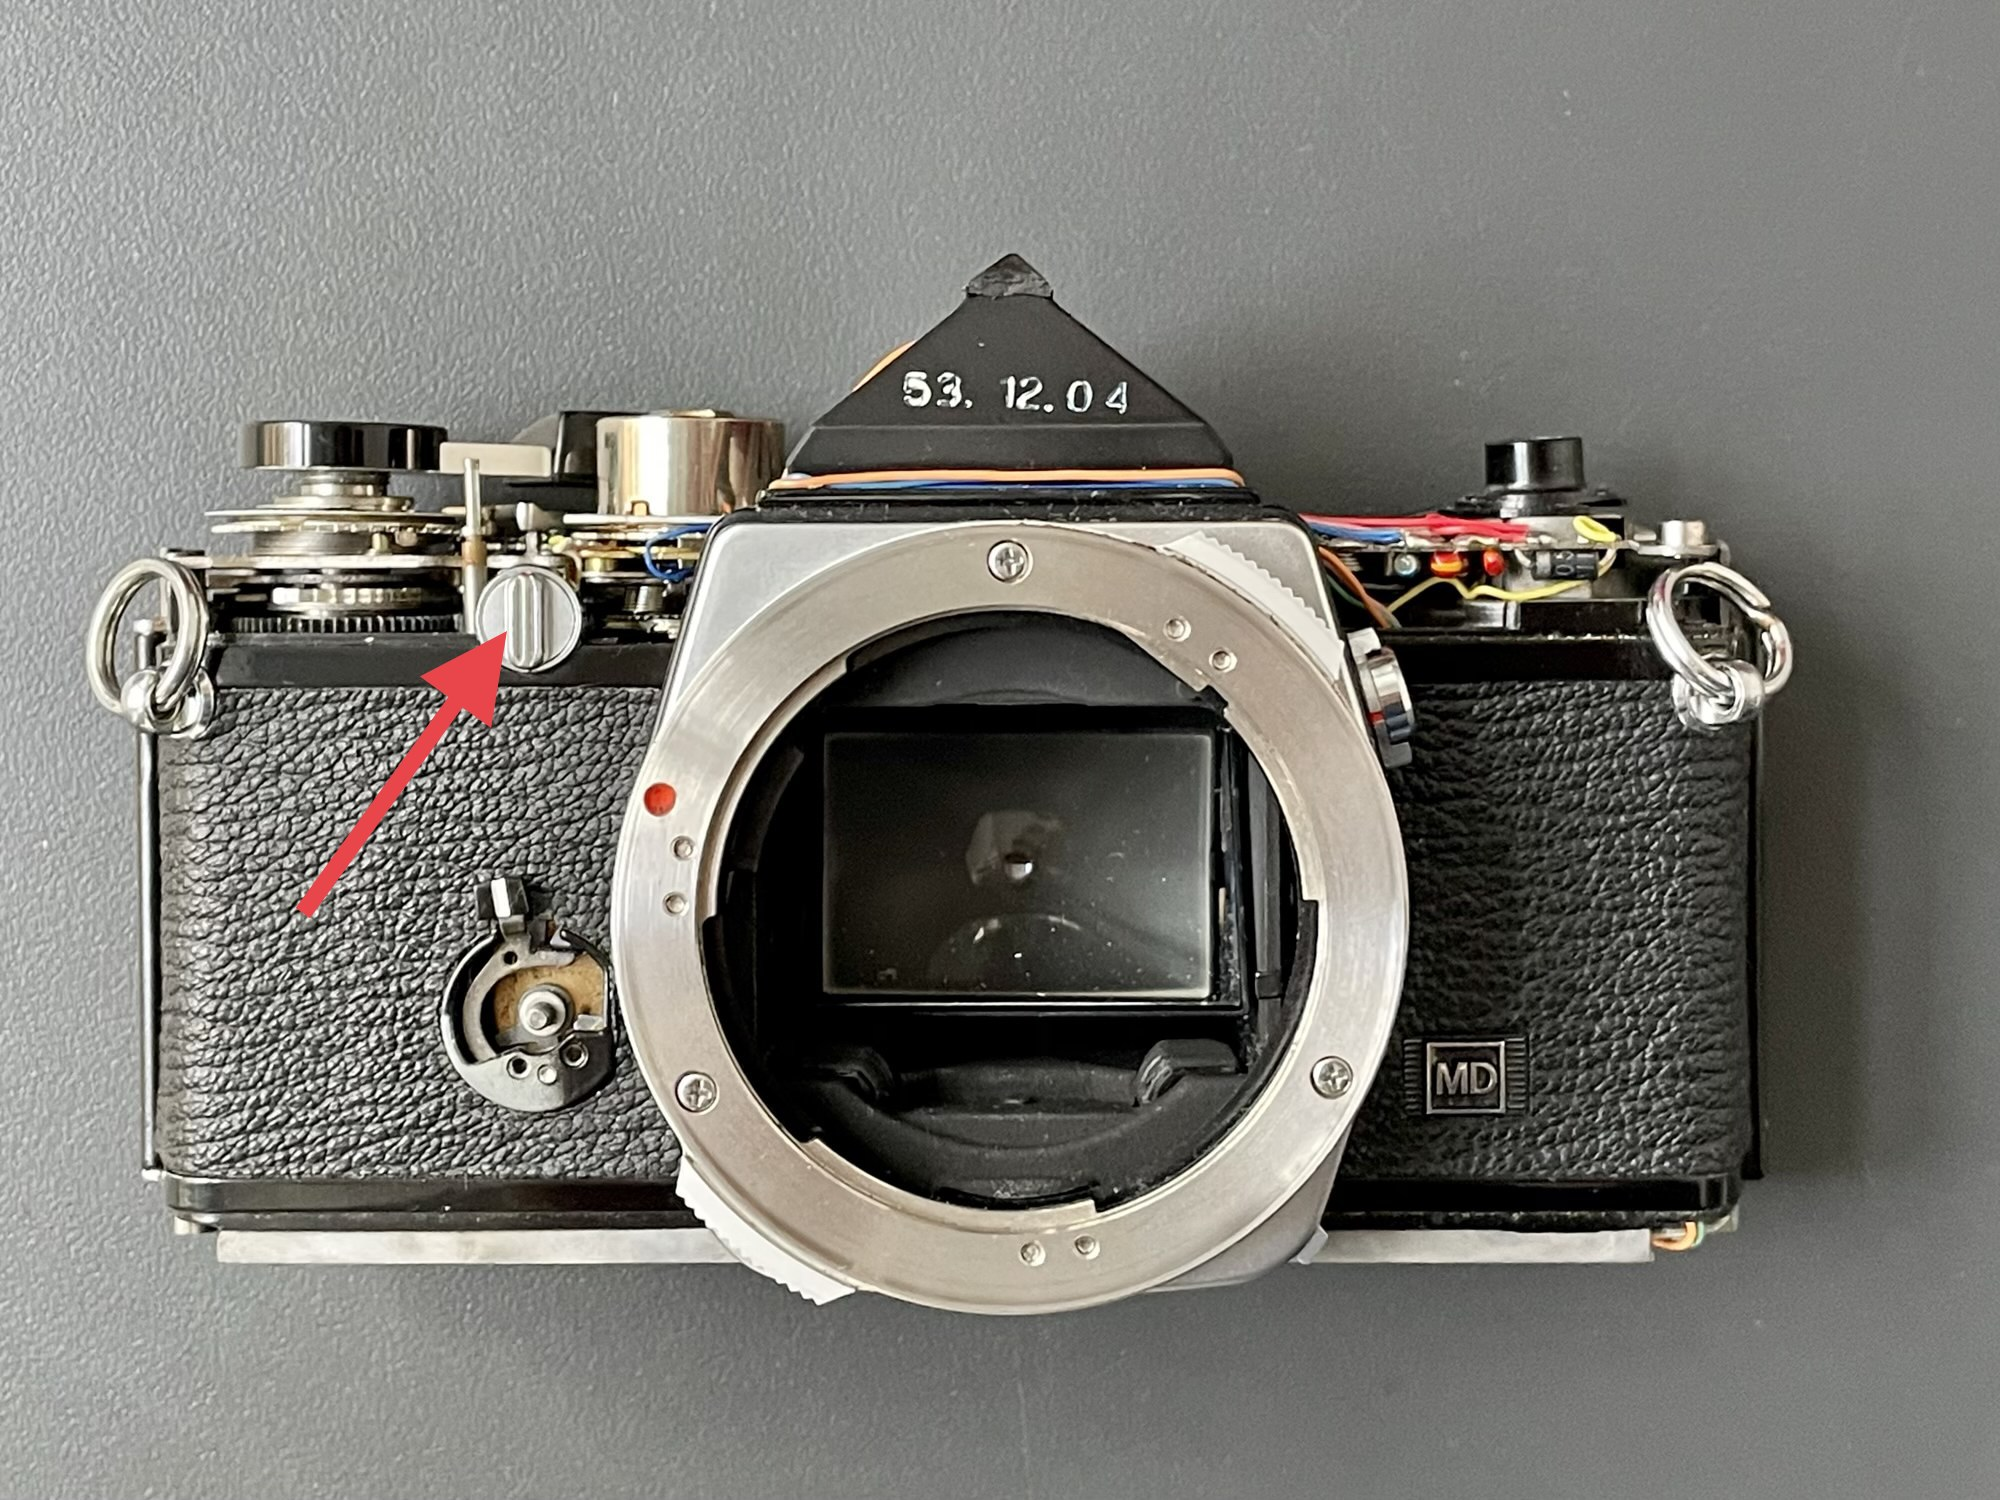 Olympus OM-2n front, with rewind release button pointed out